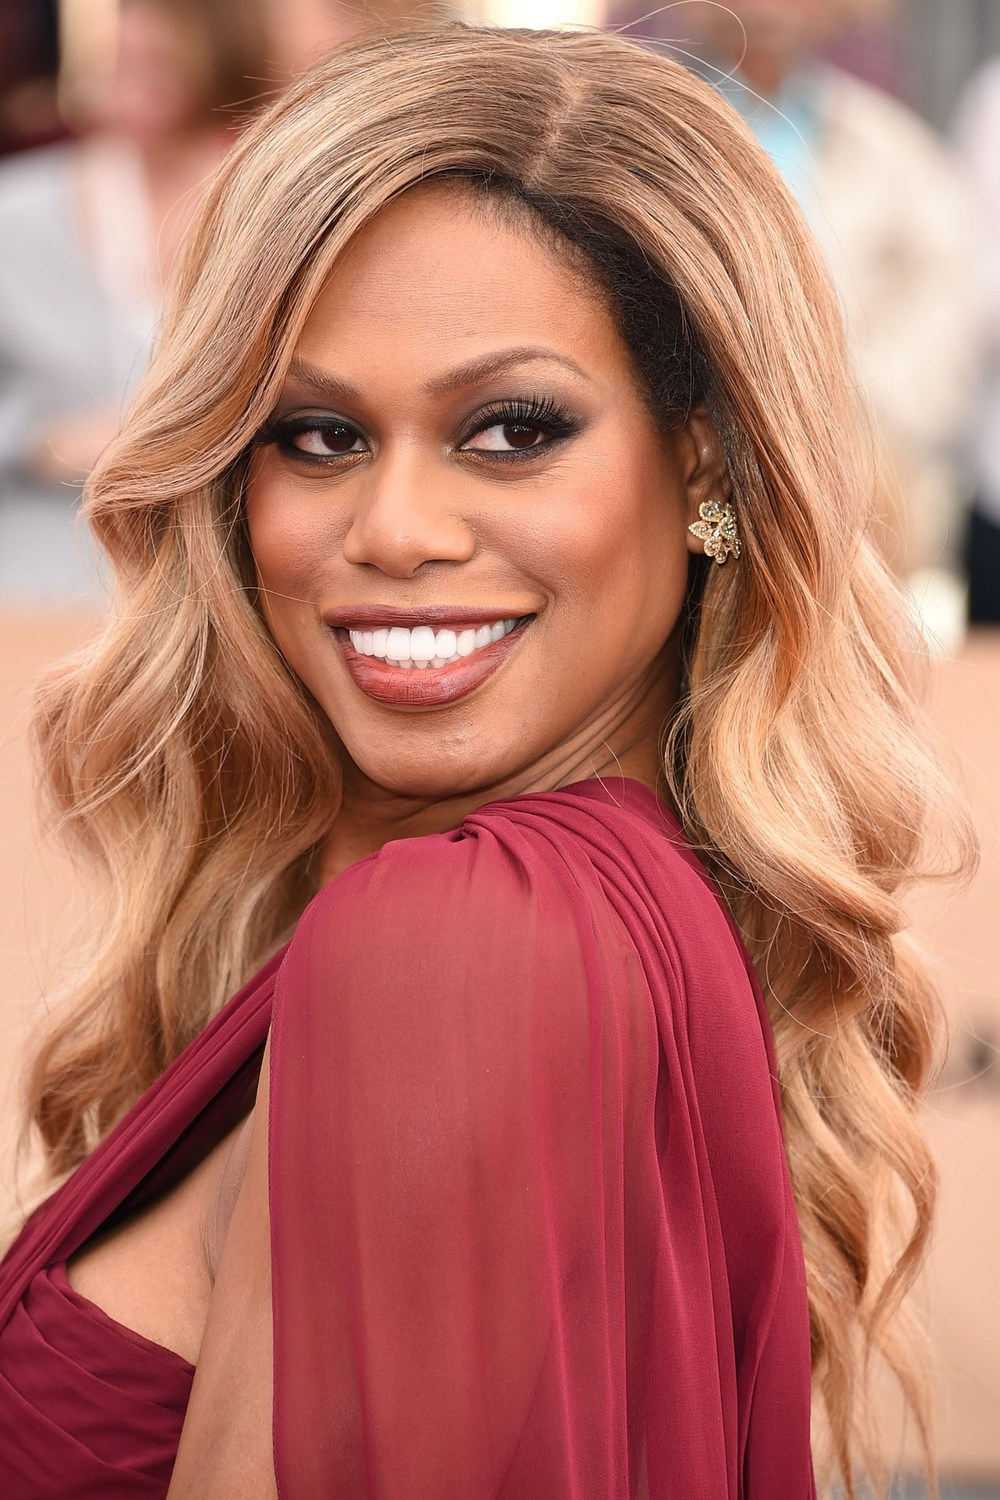 Laverne looked f***ing STUNNING. The feline extended eye make-up, the perfect nude lipstick and the tumbling waterfall curls, Laverne Cox has that Beyoncé red-carpet glamour down to a T, but worn in her own inimitable way. Extra points for the flattering flash of gold shadow at the inner corners of the eyes.